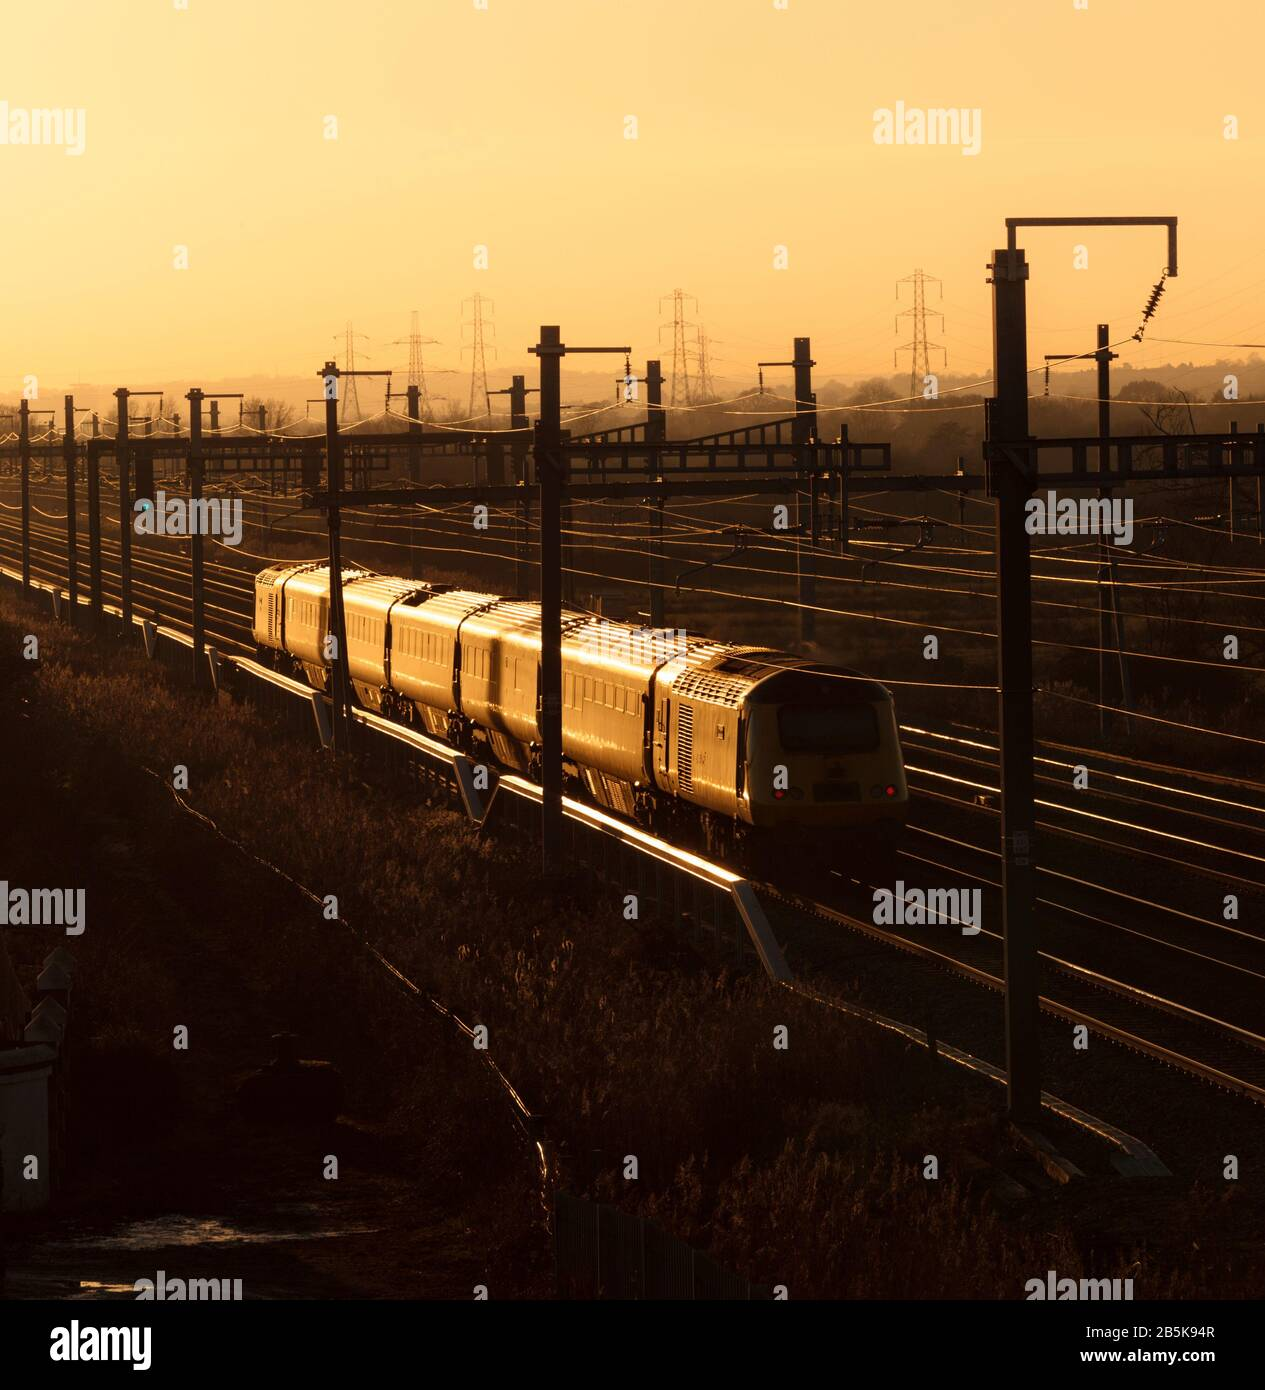 The Network Rail New Measurement train on the south Wales main line glinting in the setting sun Stock Photo